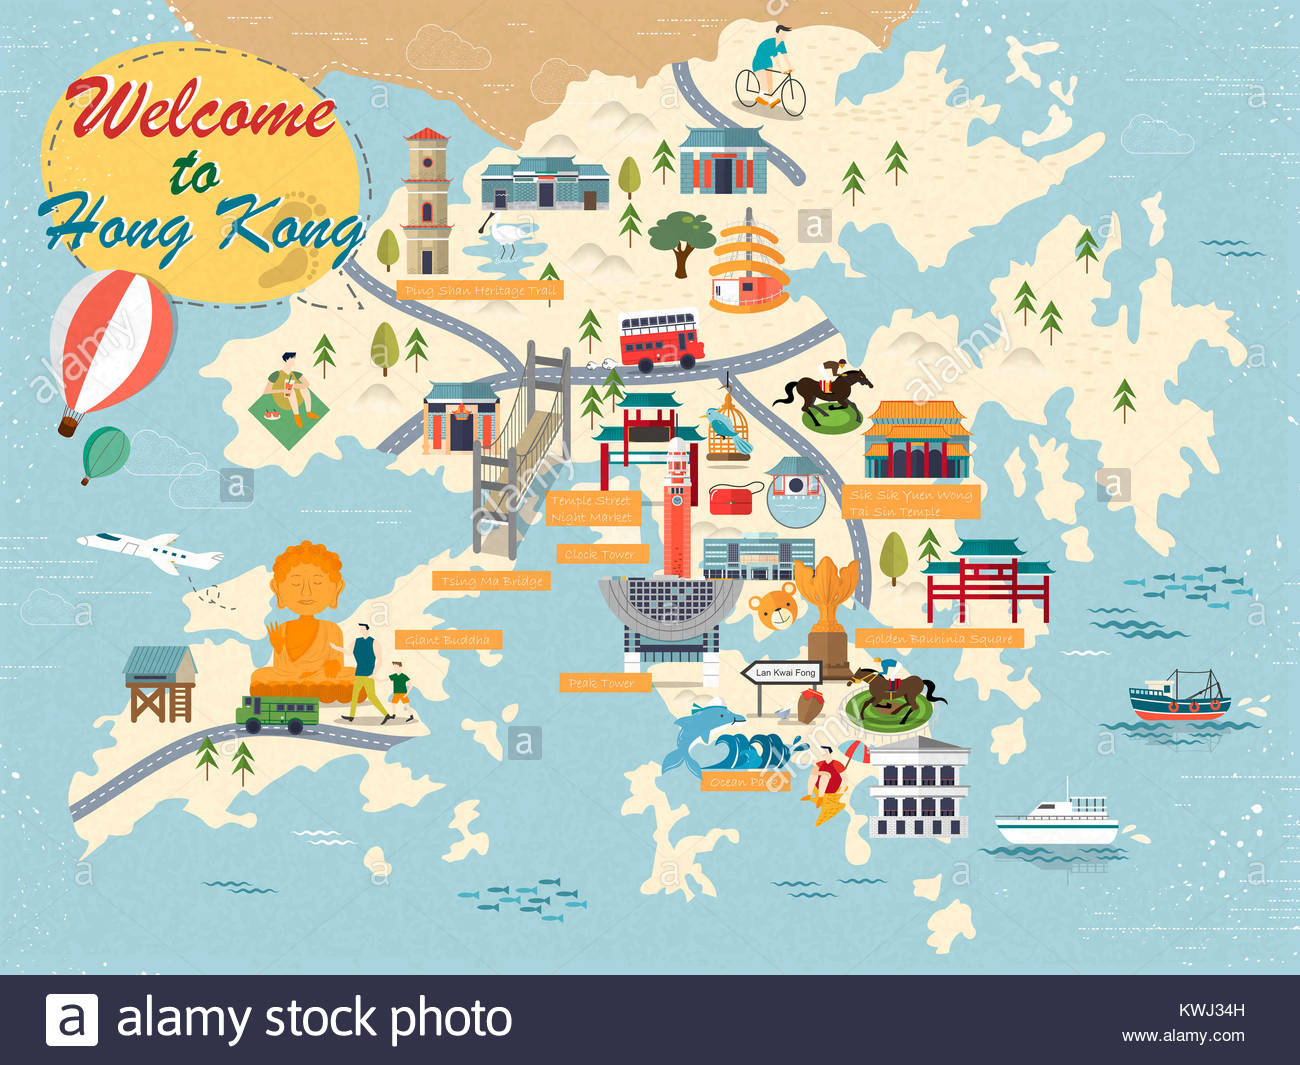 Hong Kong Map Stock Photos Hong Kong Map Stock Images Page 2 Alamy